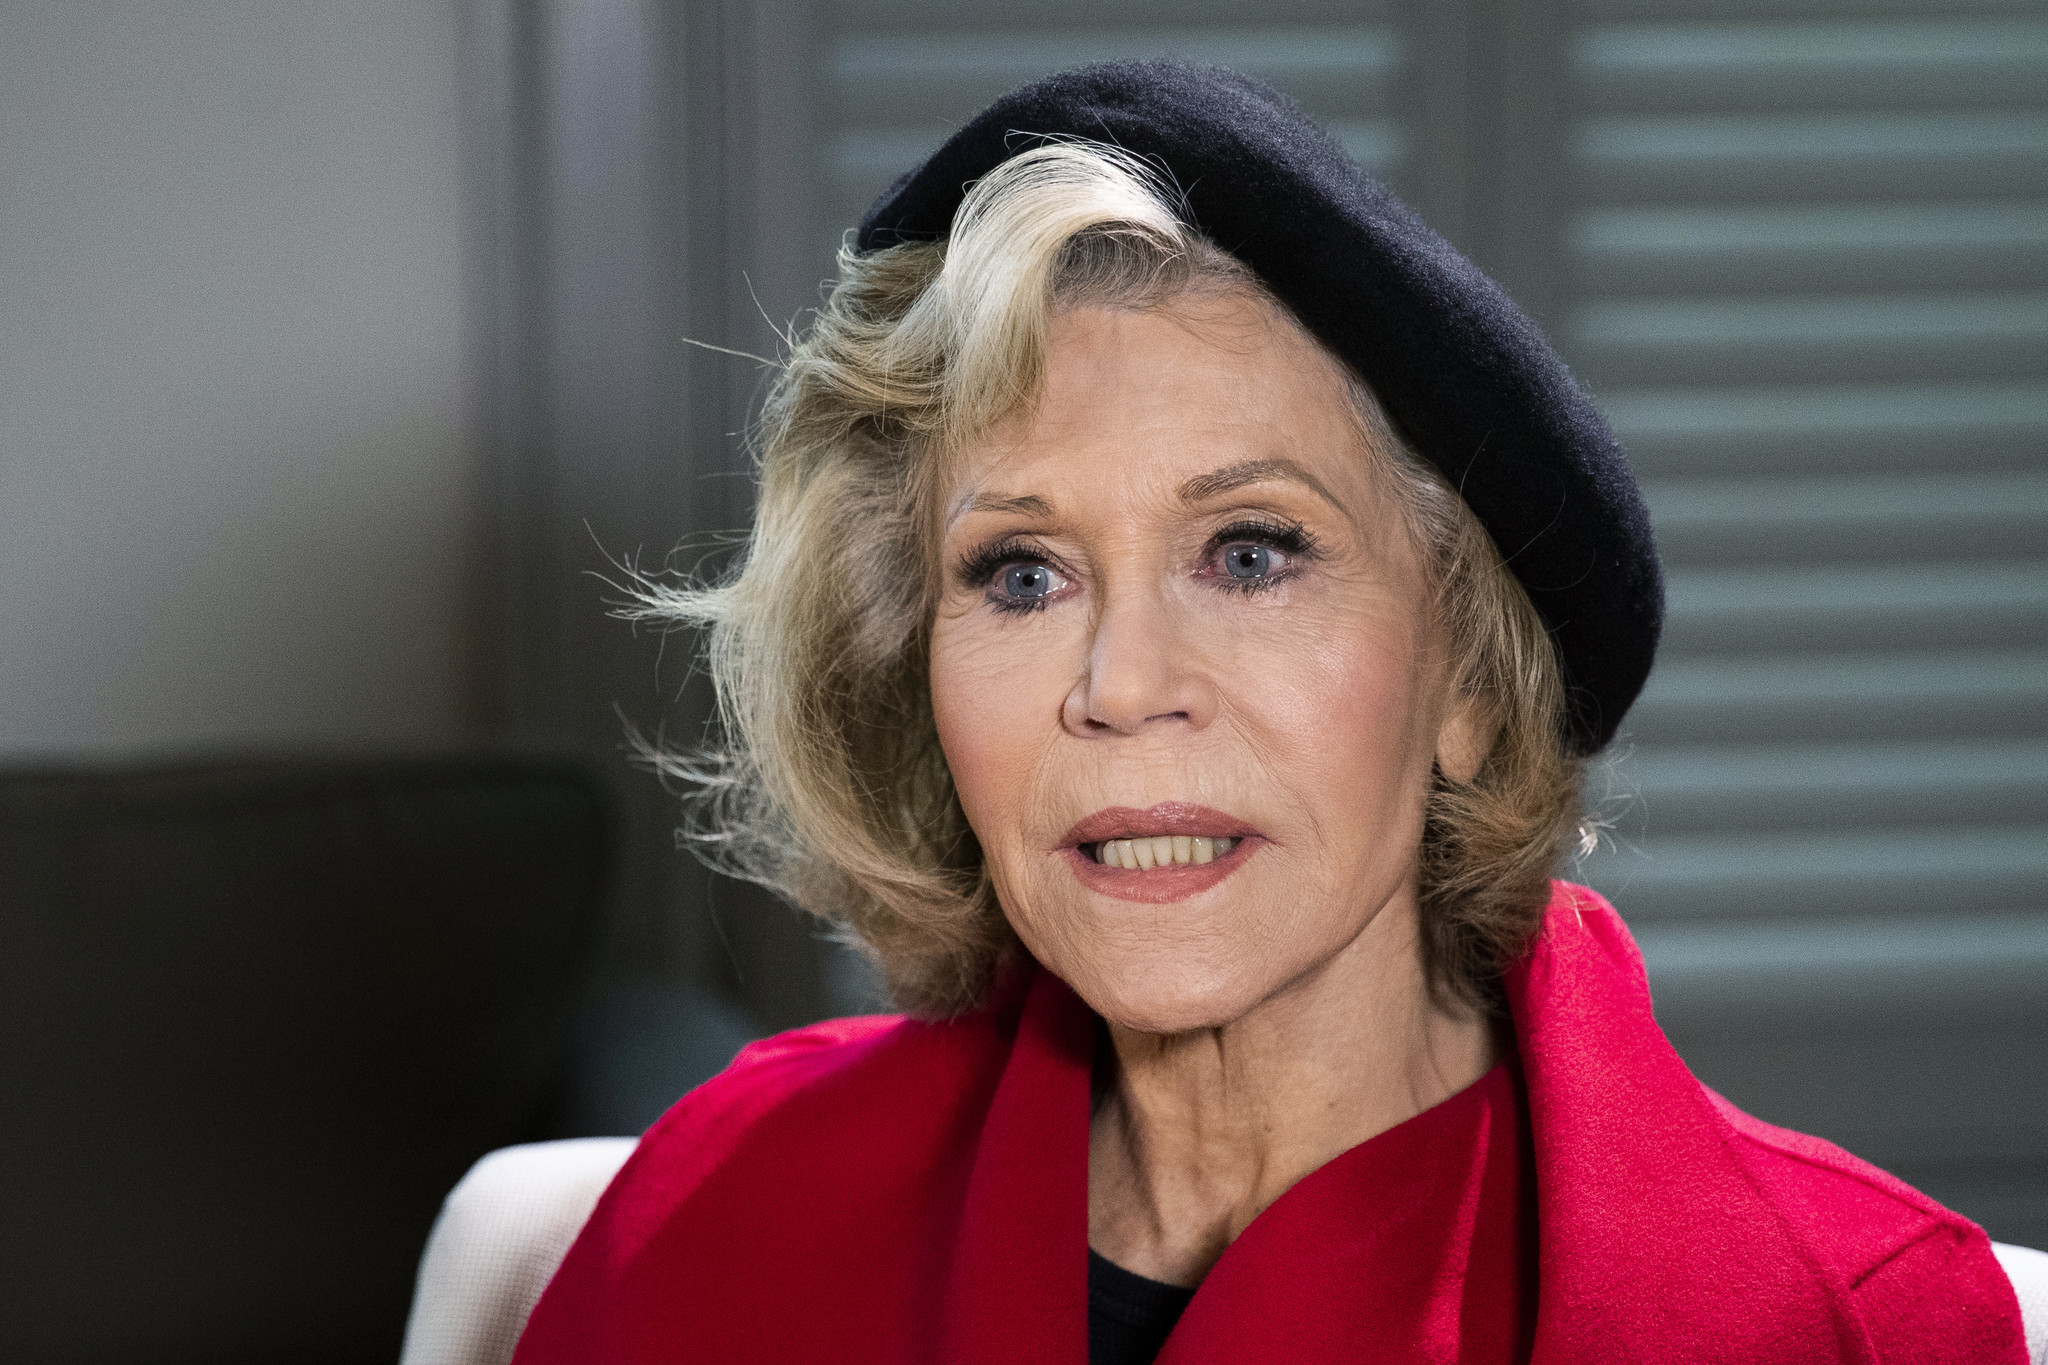 Taking on ageism, Jane Fonda swears off plastic surgery; 'I'm not going to cut myself up anymore'